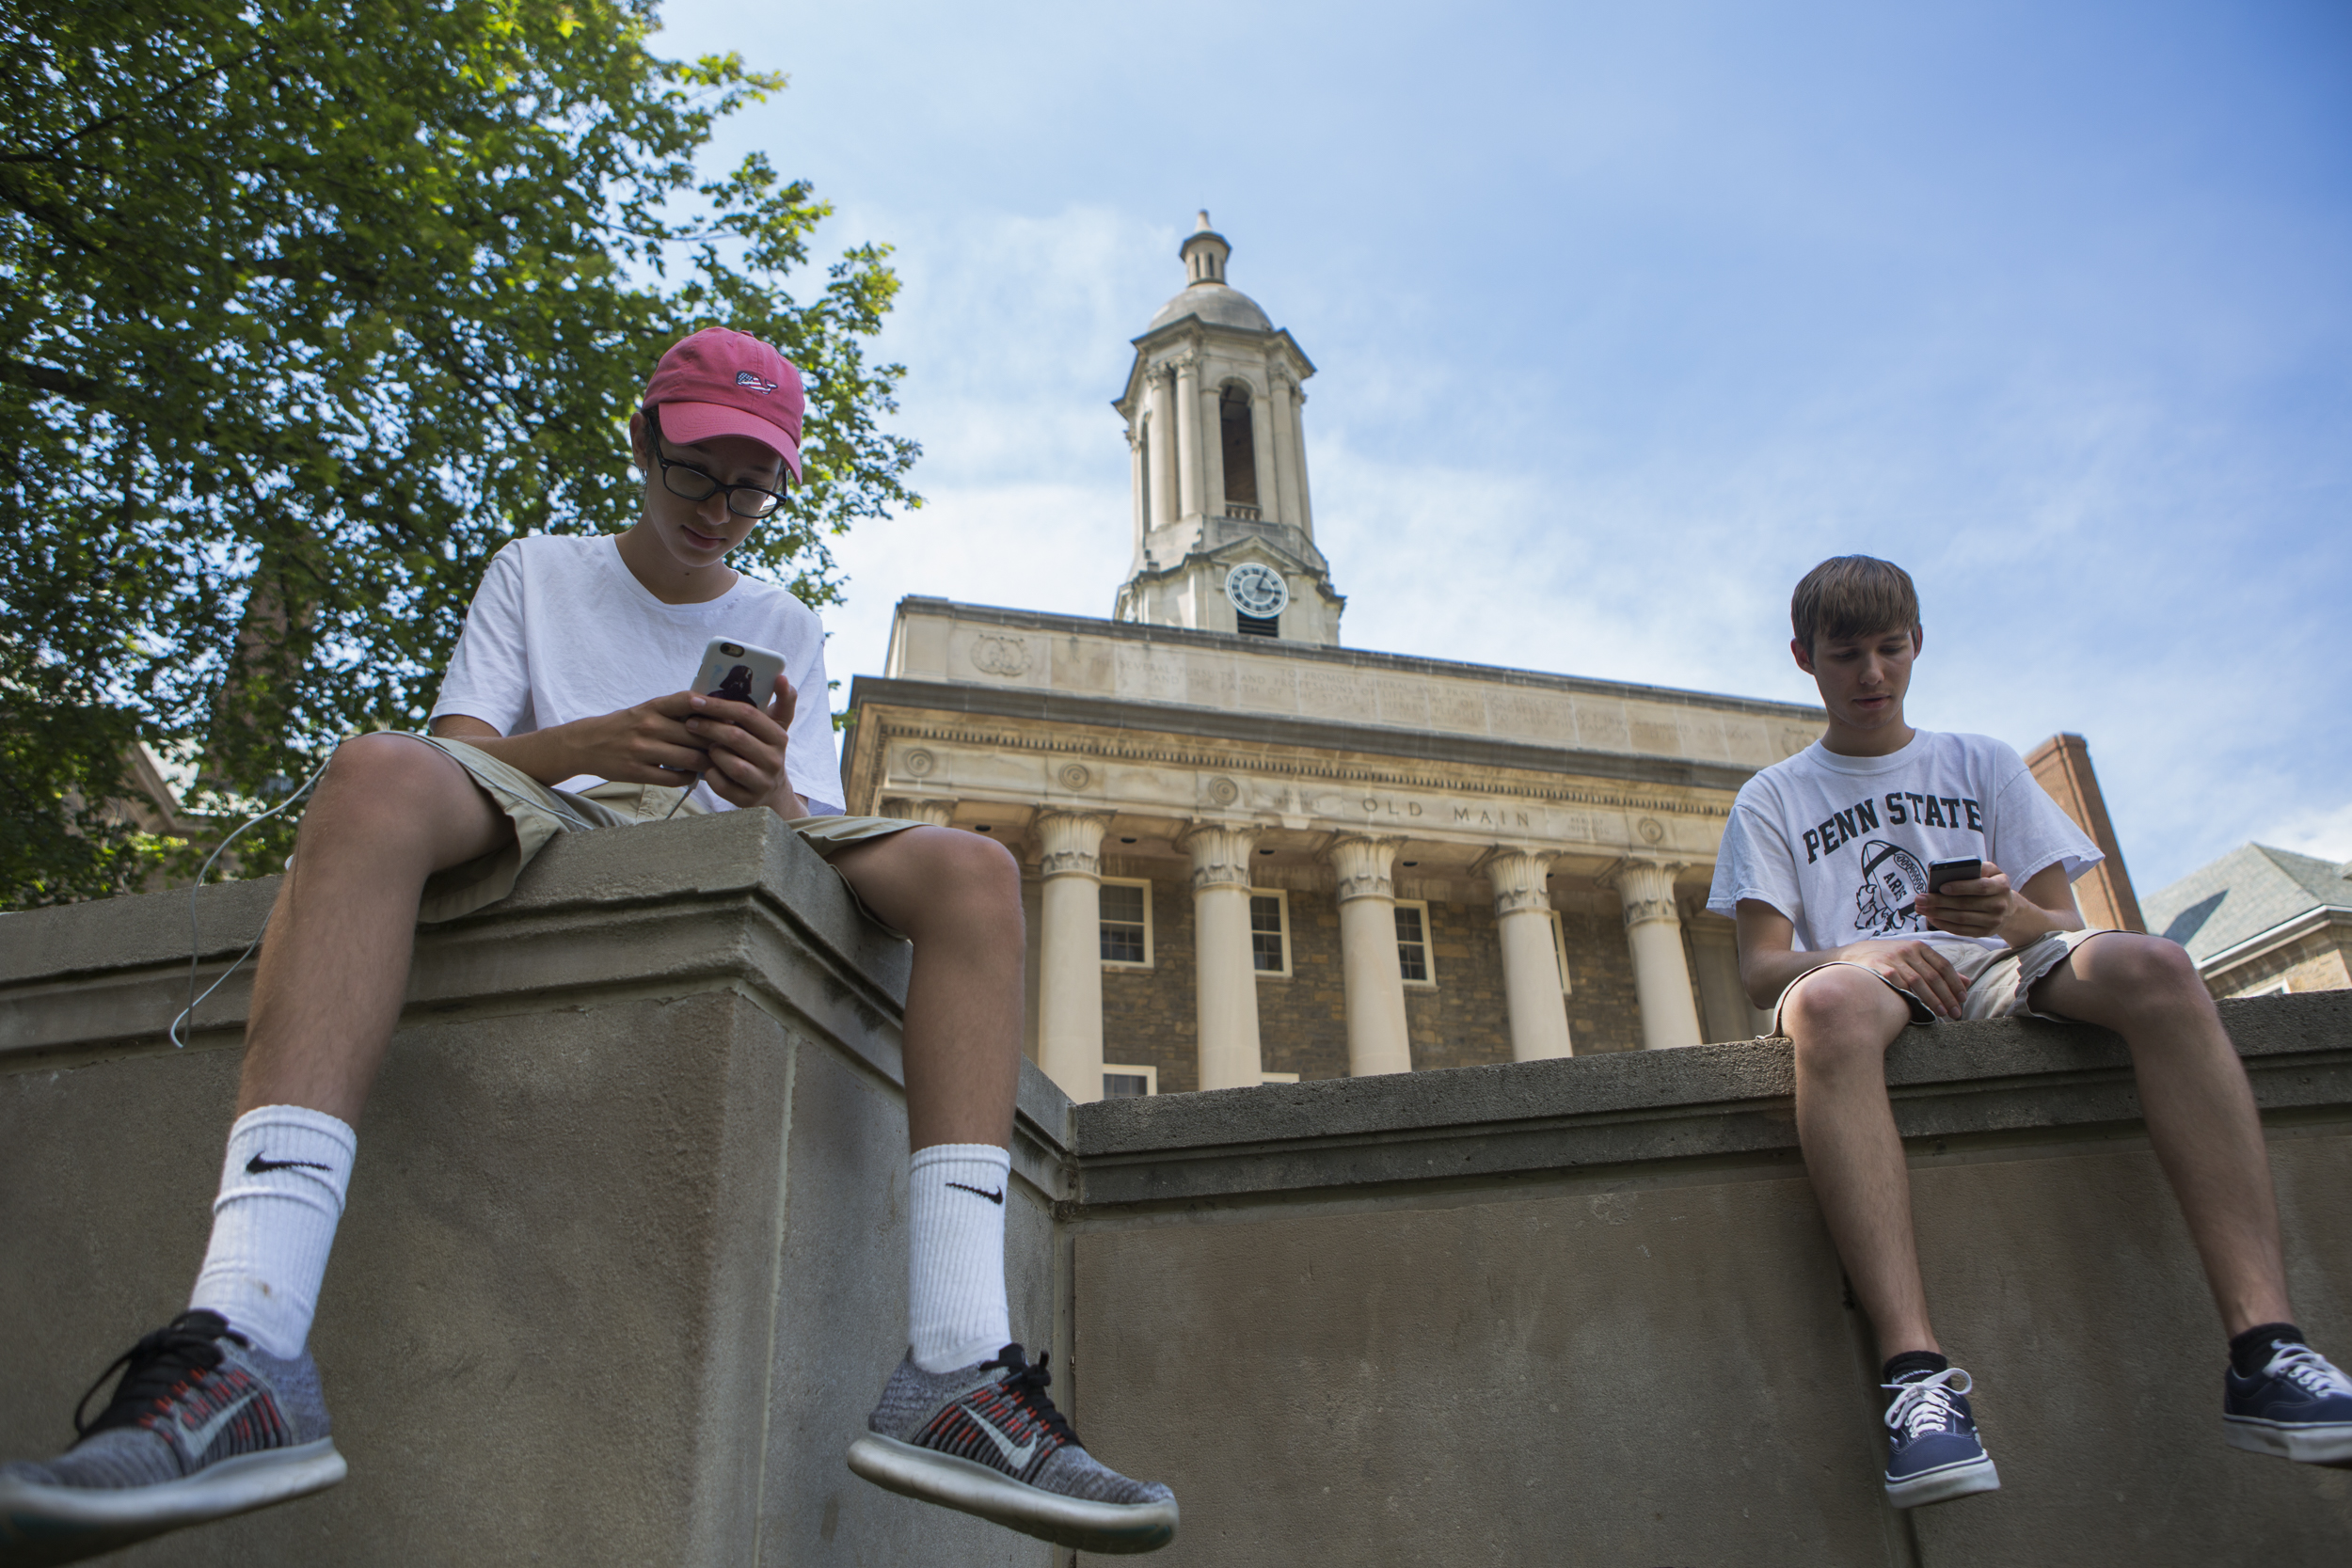 State College local brothers Sam Woytowich, left, and Zach Woytowich play Pokémon Go on the steps of Old Main on Monday, July 18, 2016.